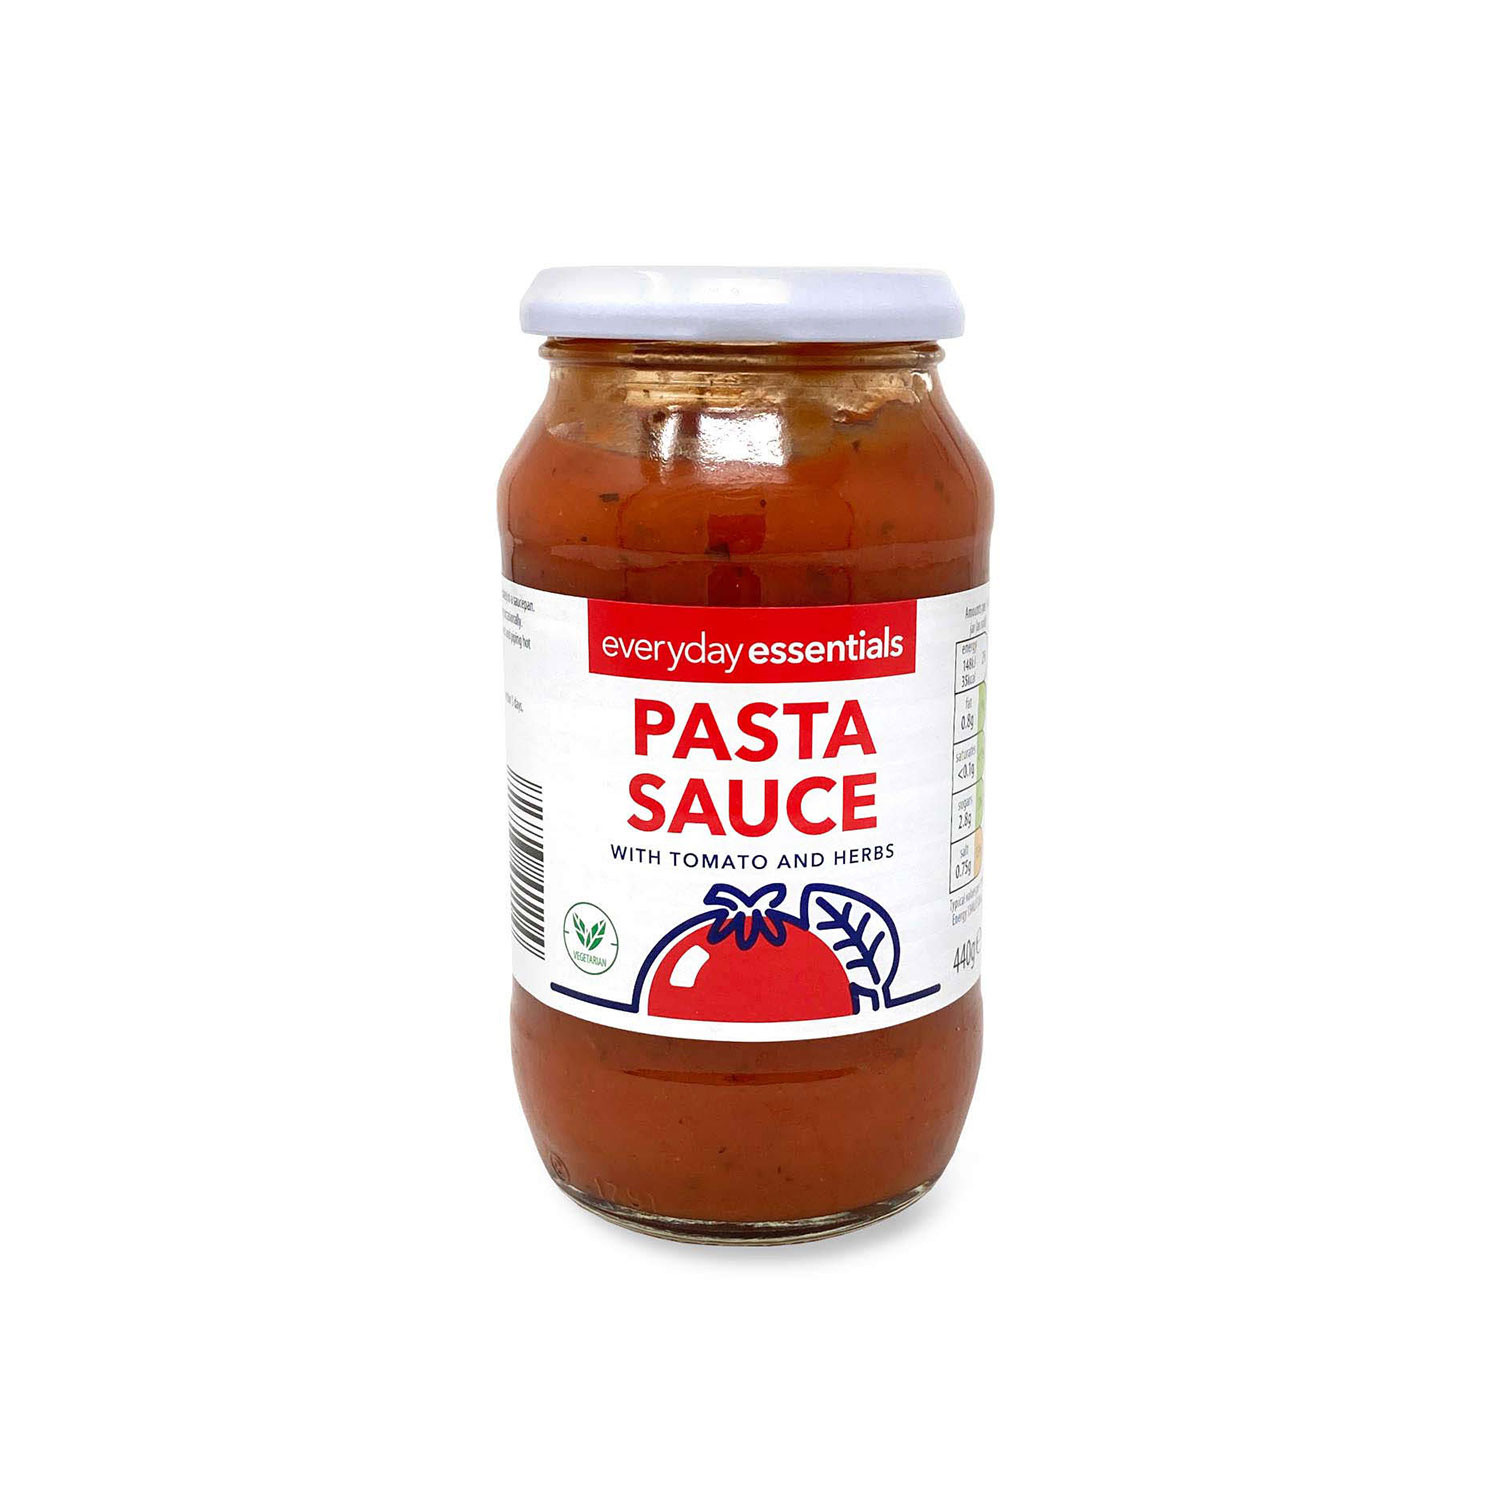 Pasta Sauce With Tomato And Herbs